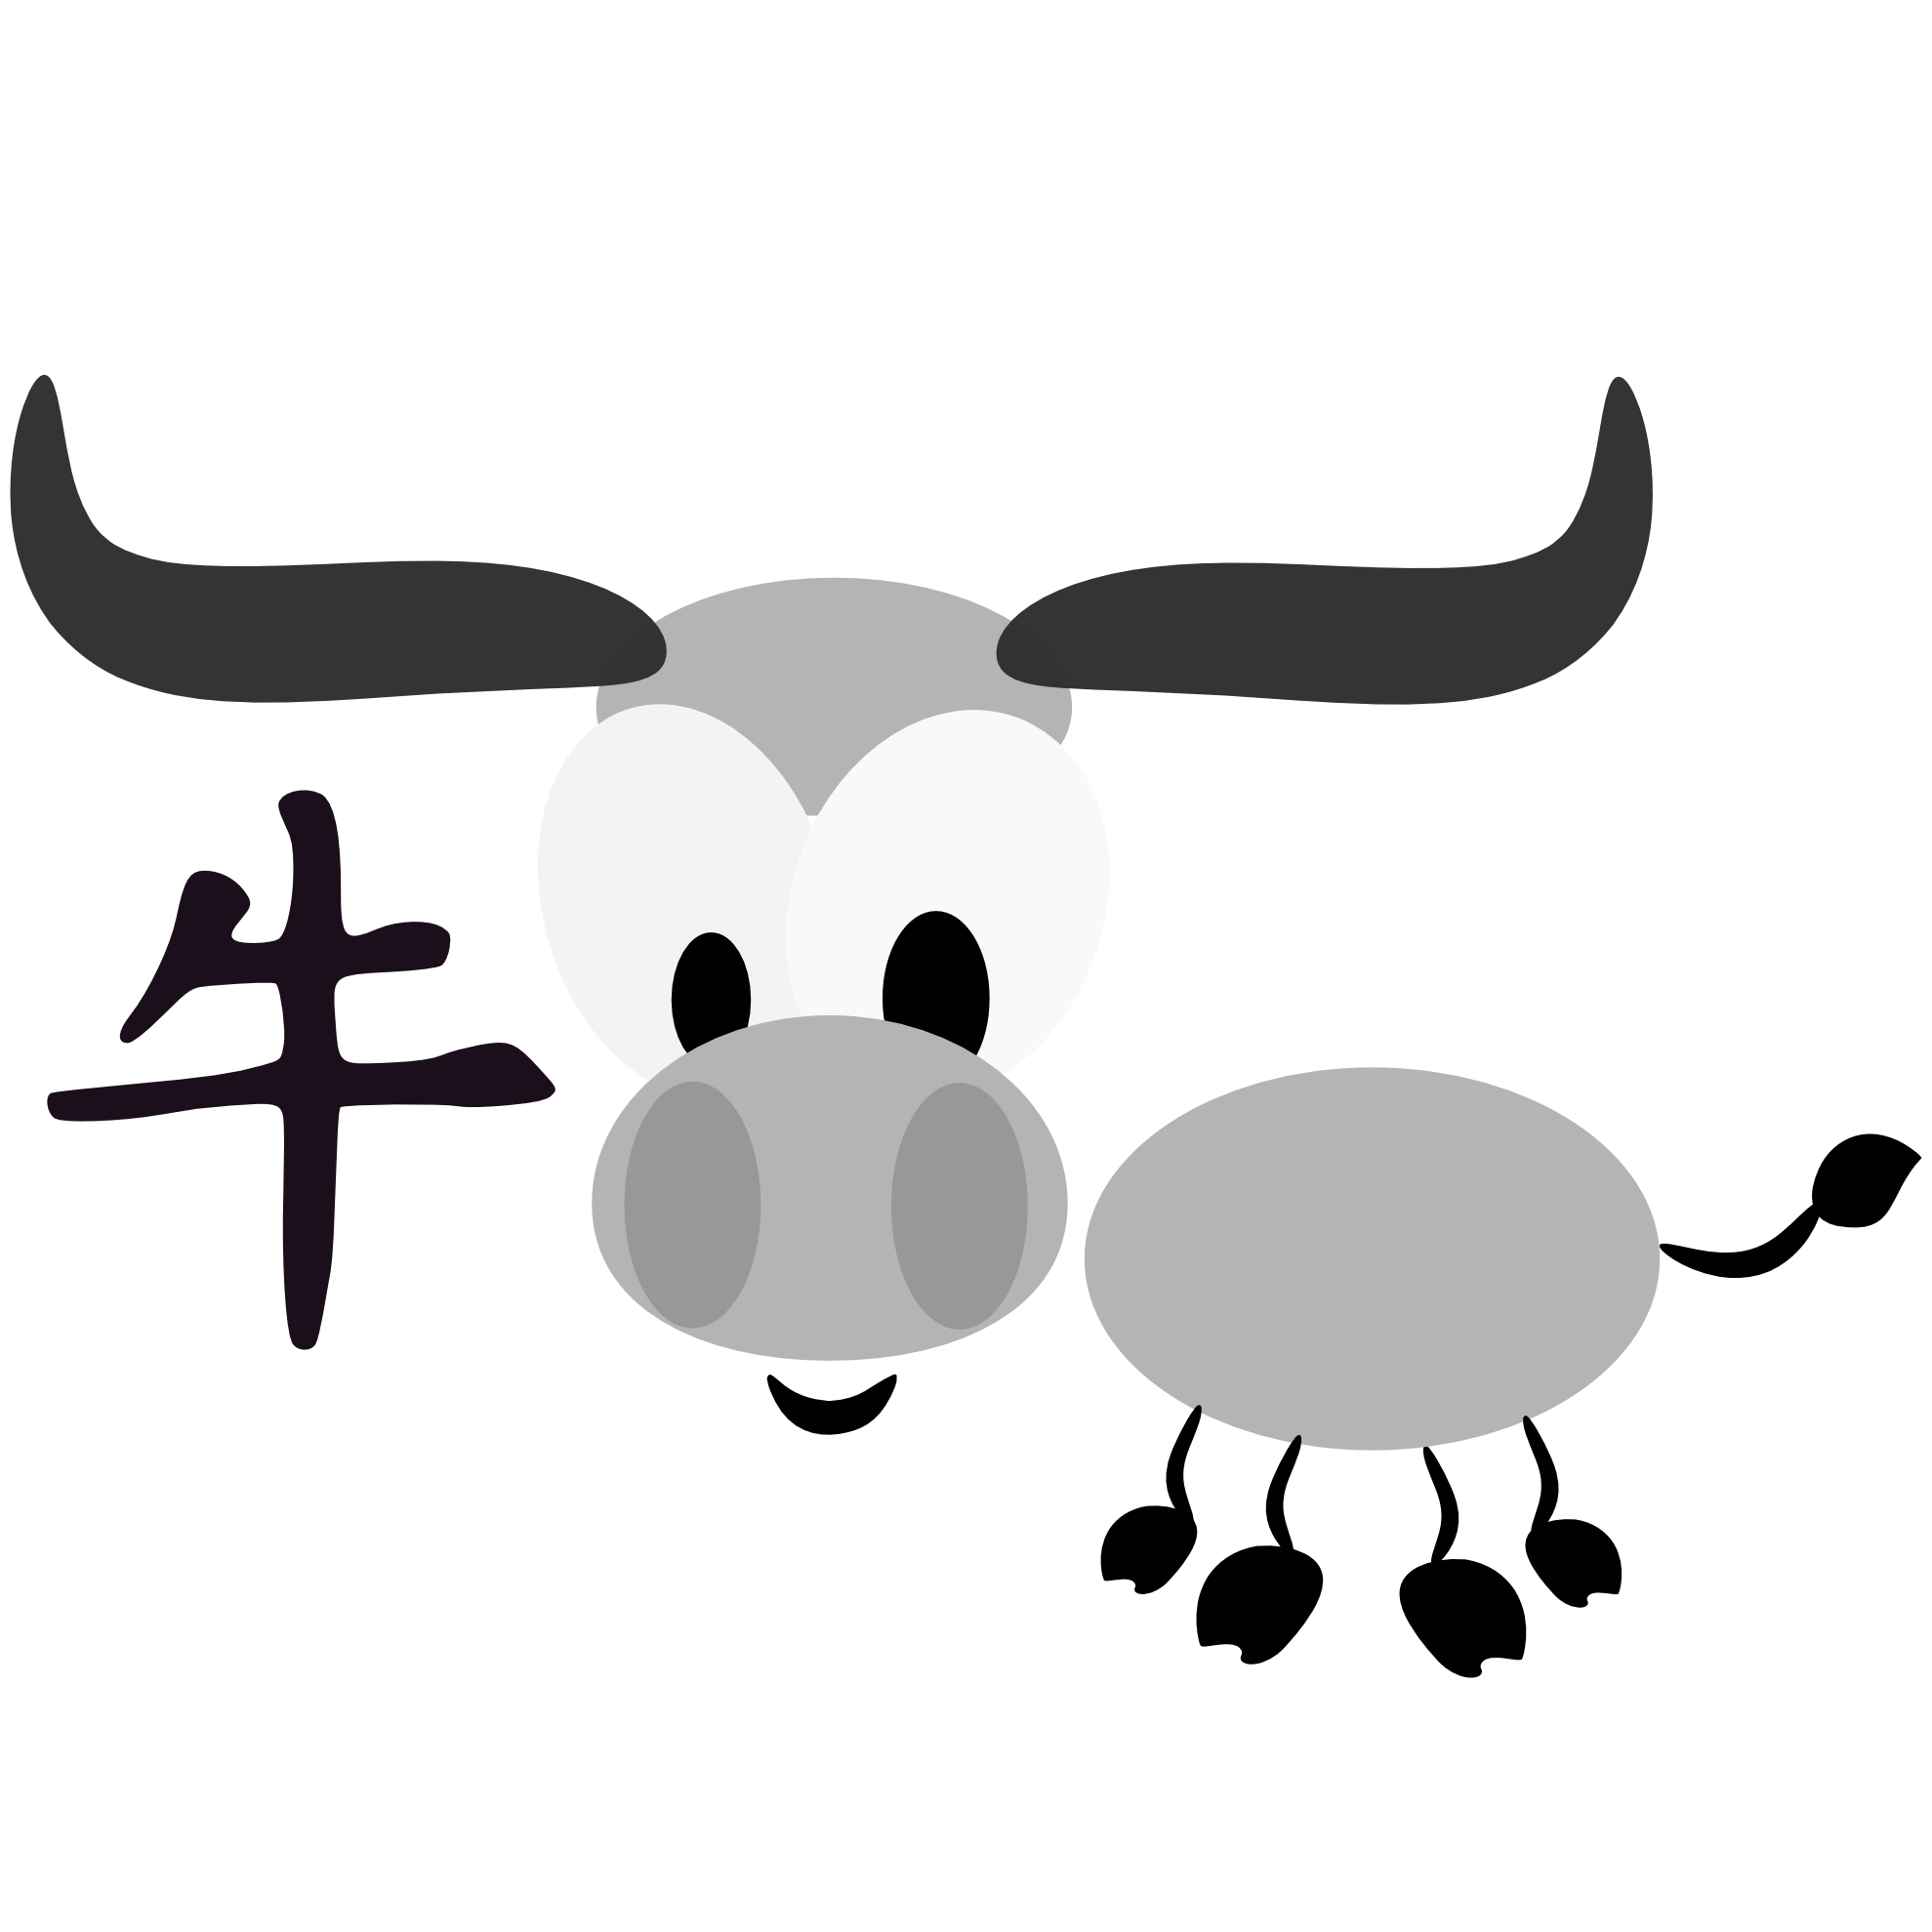 Chinese horoscope sign character. Ox clipart cartoon